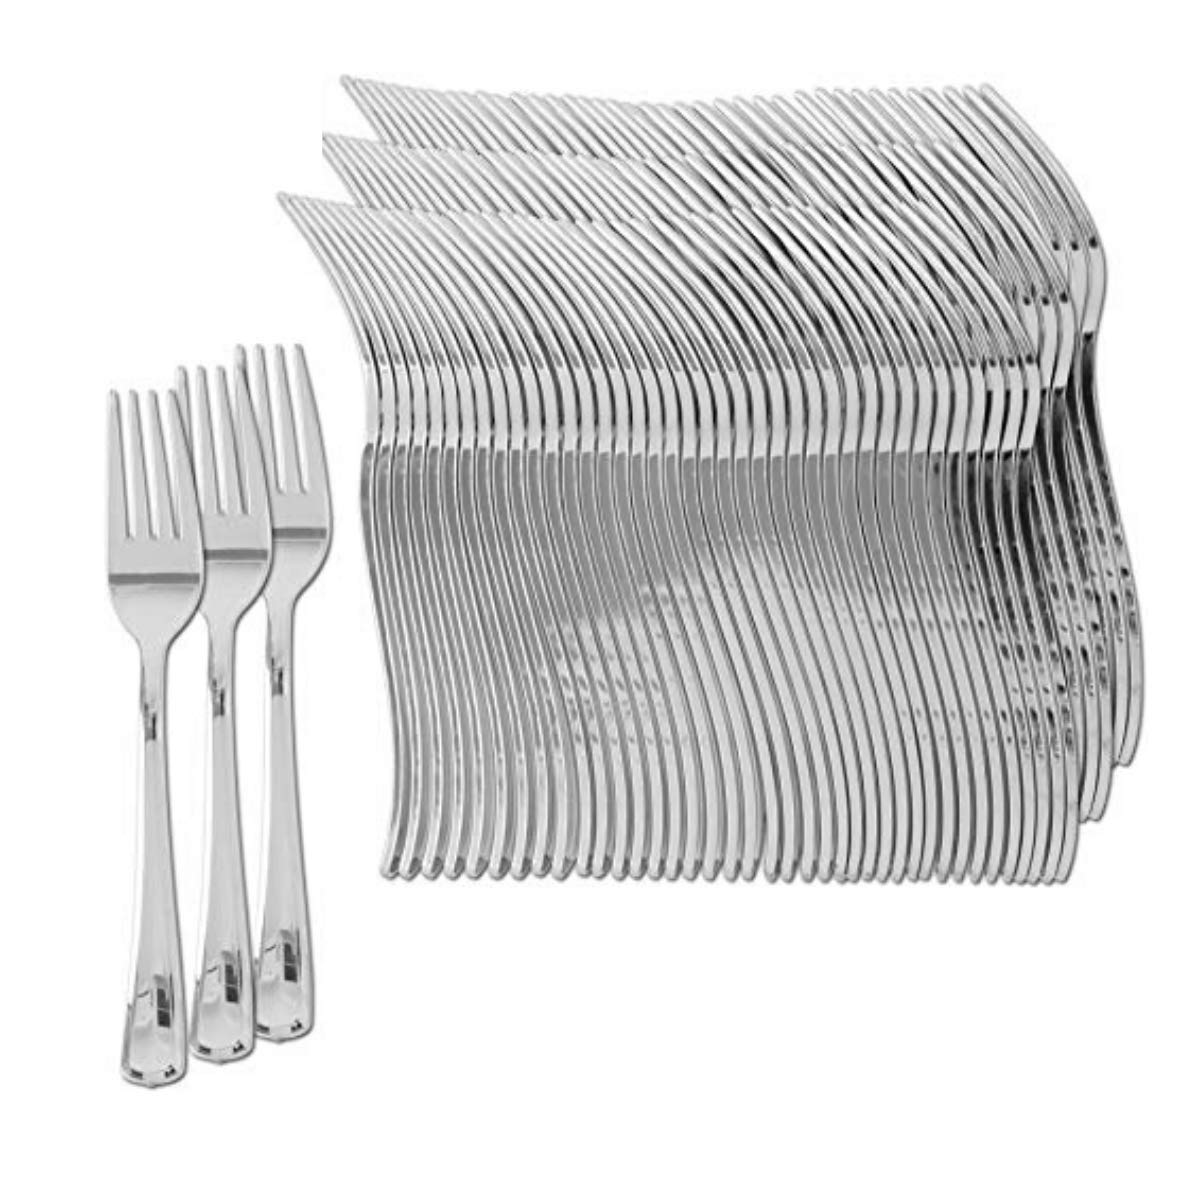 Plastic Silverware | Heavy Duty & Solid Cutlery Disposable Utensils Set | Perfect for Weddings, Buffets, Luncheon, Birthdays, More | Pack of 150 Silver Plastic Forks